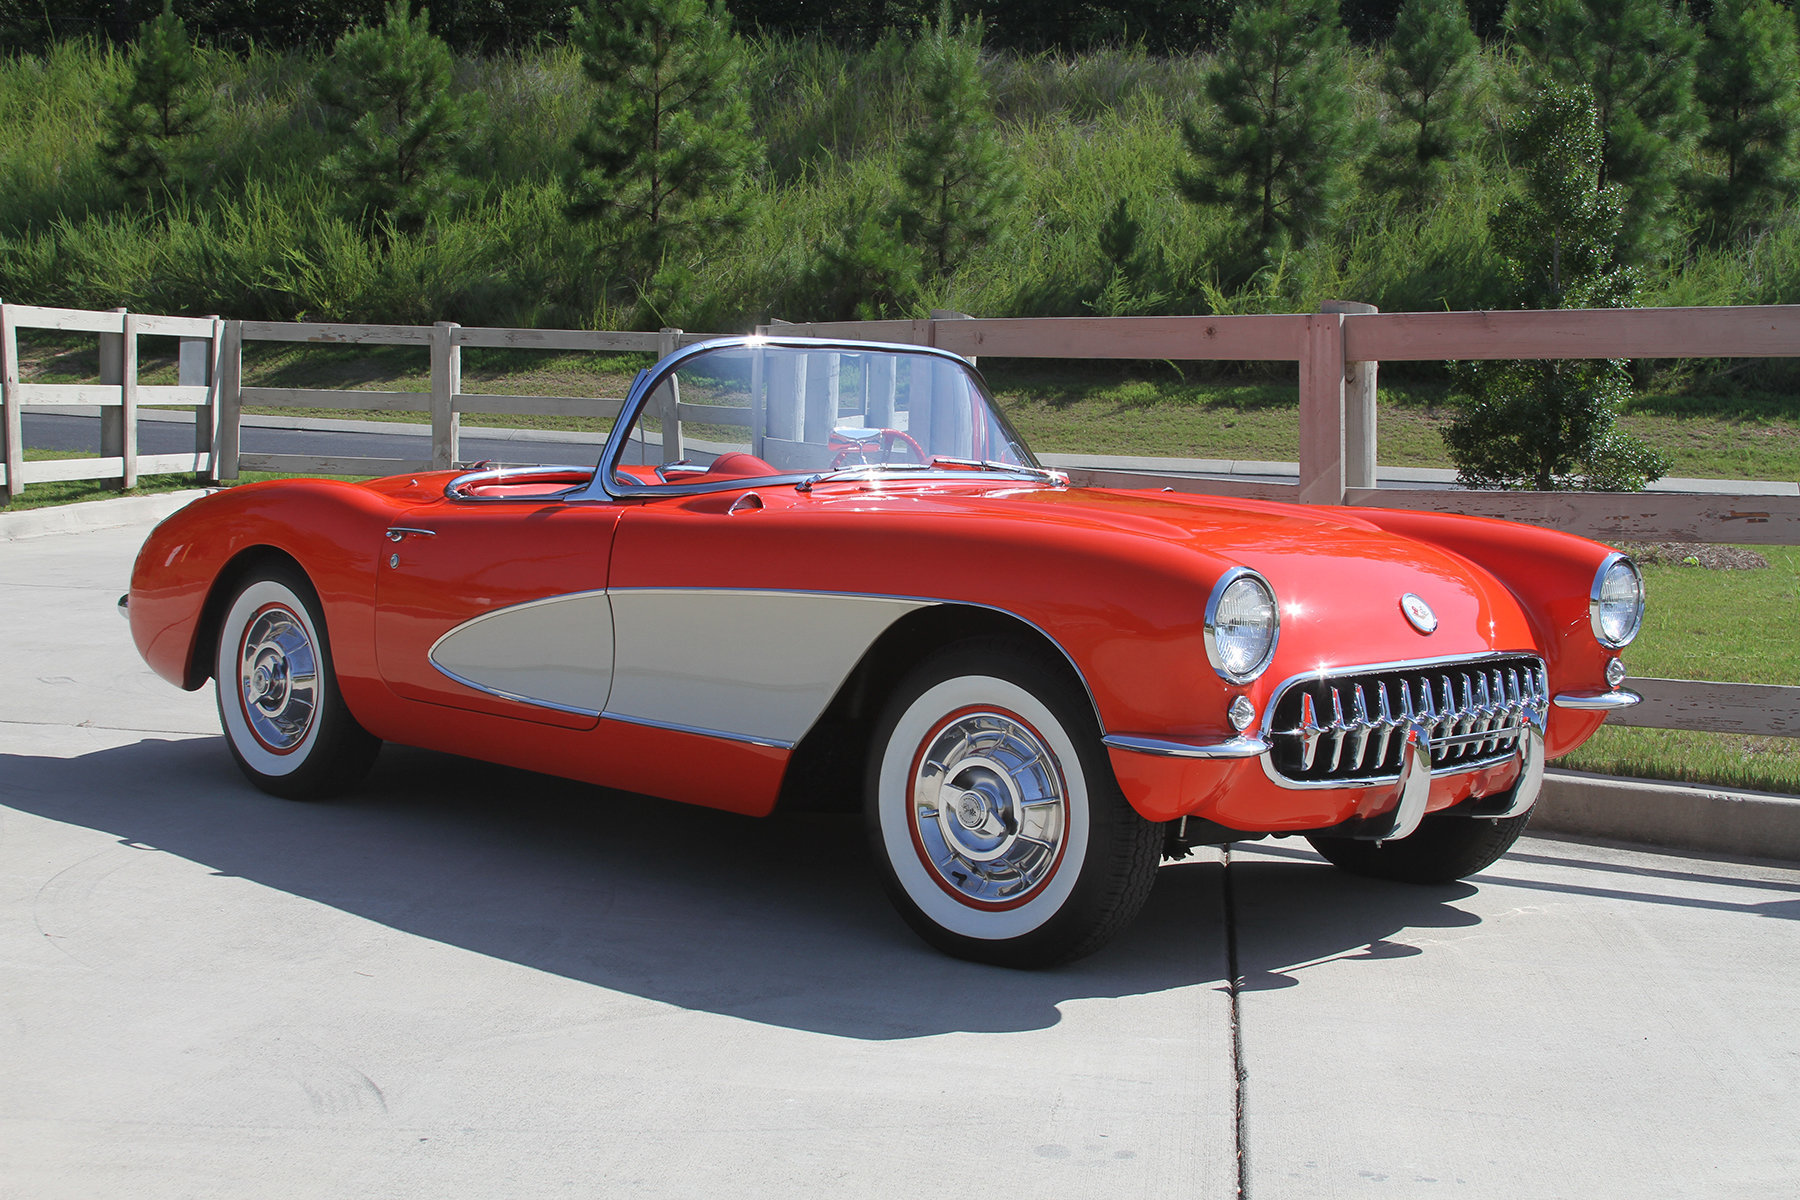 17902a0e12b3 hd 1957 chevrolet corvette